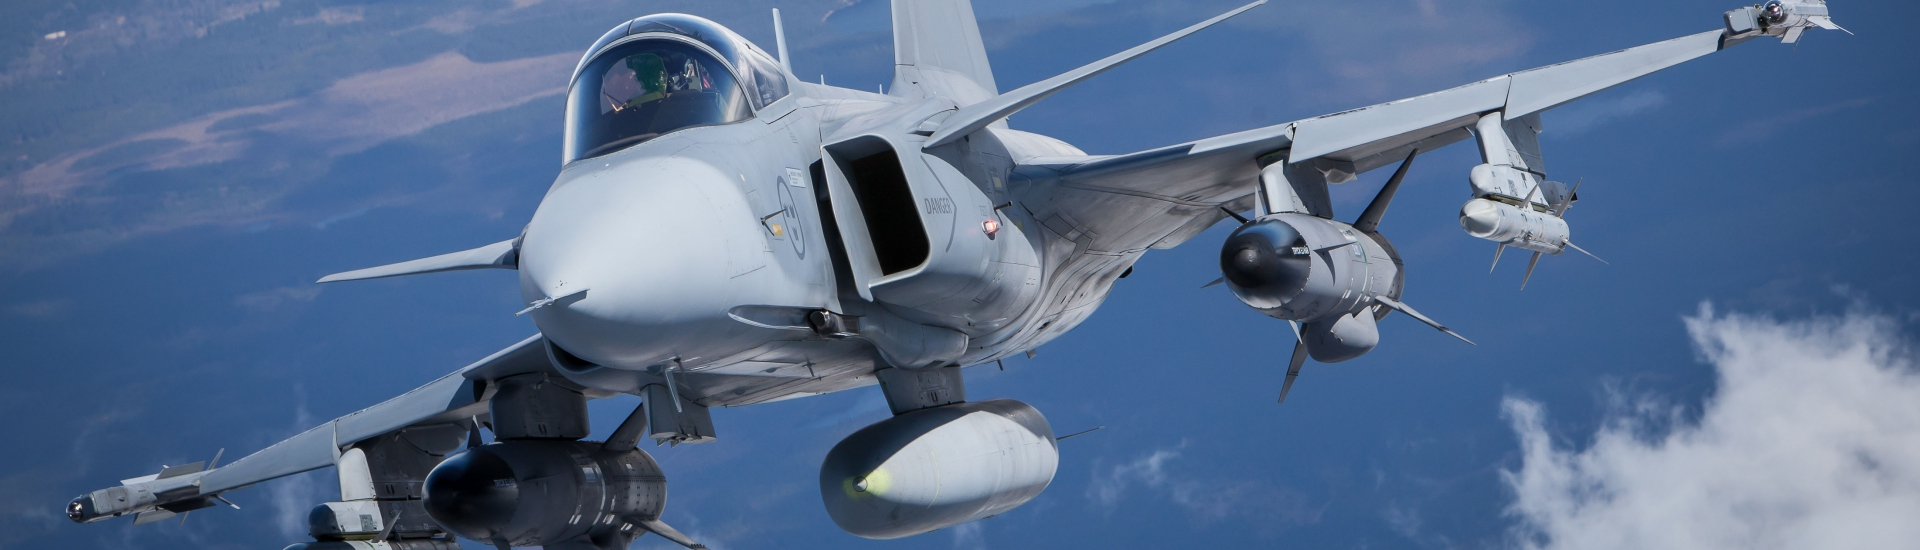 PARTNER TO JAS GRIPEN